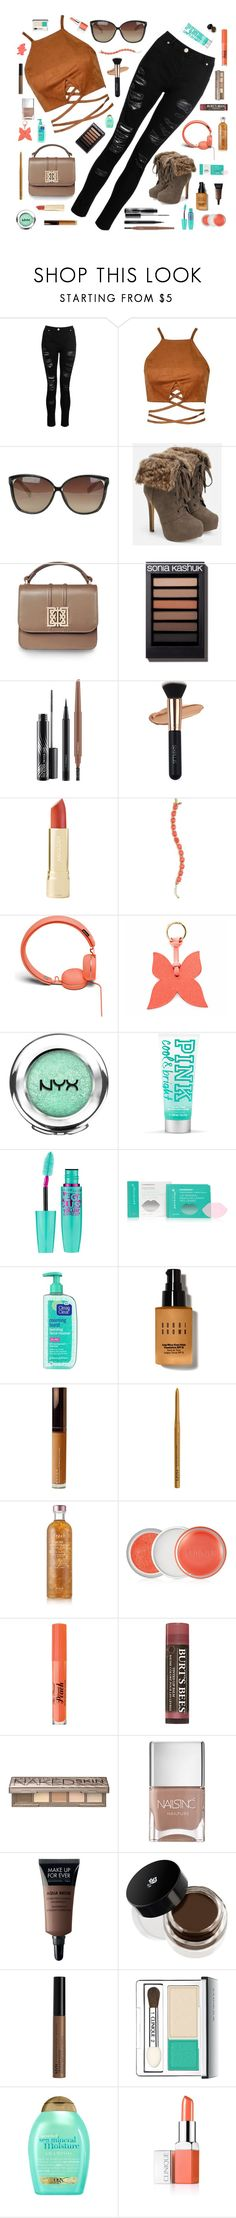 """""""Scatter"""" by cocochaneljr ❤ liked on Polyvore featuring Dorothy Perkins, Linda Farrow, JustFab, MAC Cosmetics, Kate Spade, Urbanears, La Portegna, NYX, Patchology and Clean & Clear"""